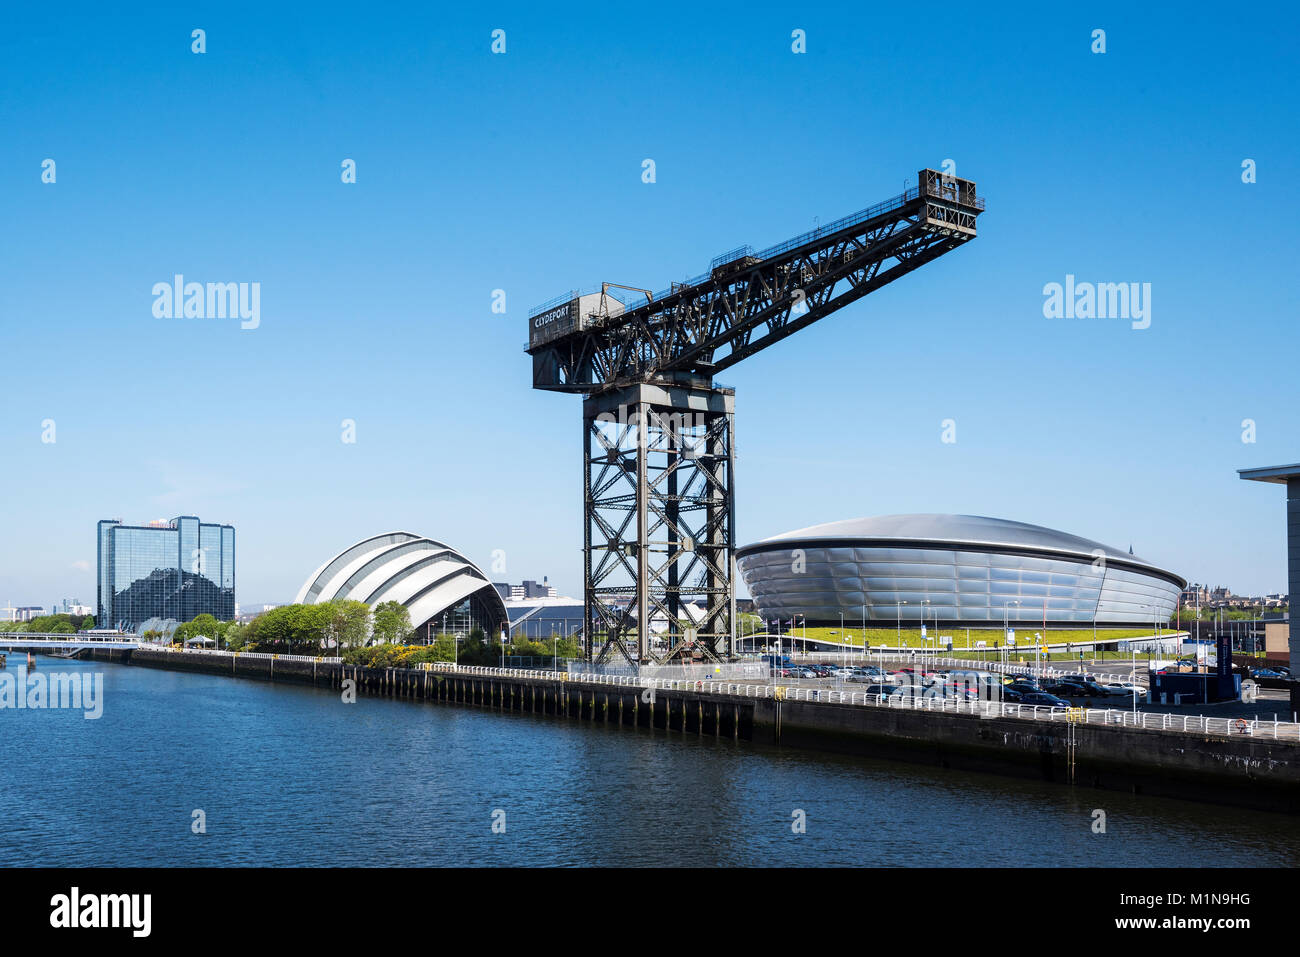 Finnieston Crane and Scottish Event Campus at River Clyde Glasgow. - Stock Image